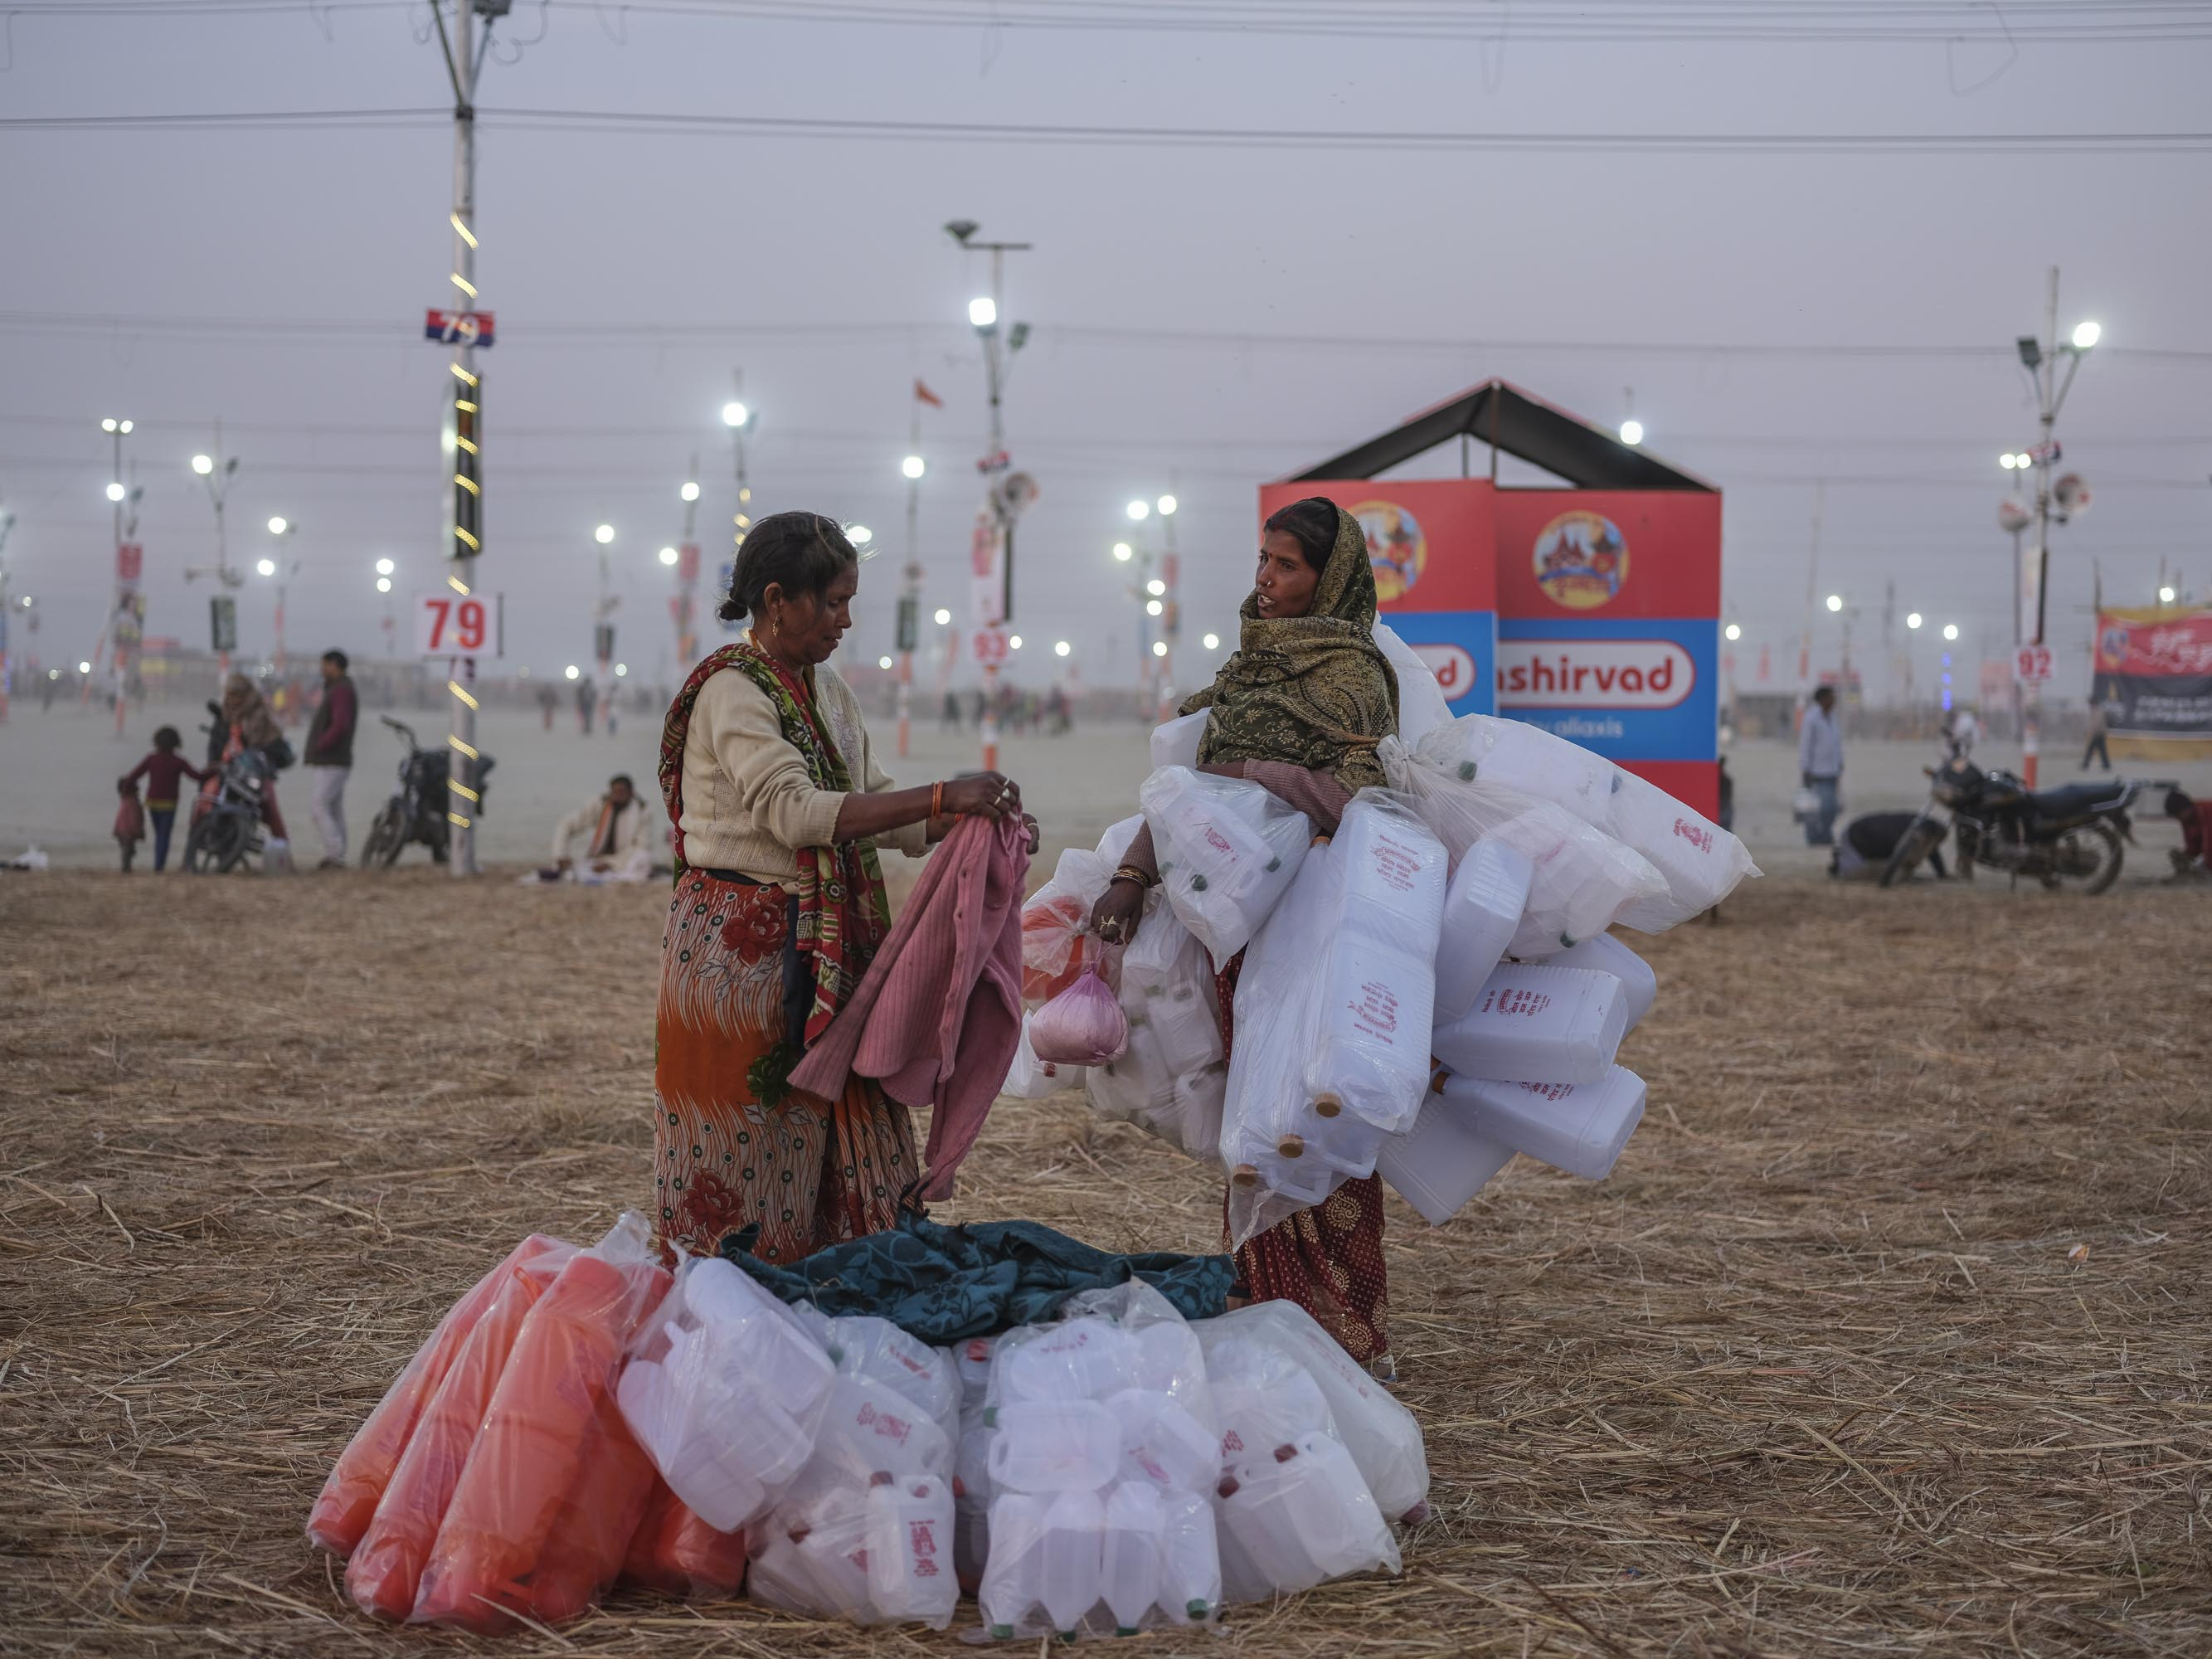 sunset women business pilgrims Kumbh mela 2019 India Allahabad Prayagraj Ardh hindu religious Festival event rivers photographer jose jeuland photography